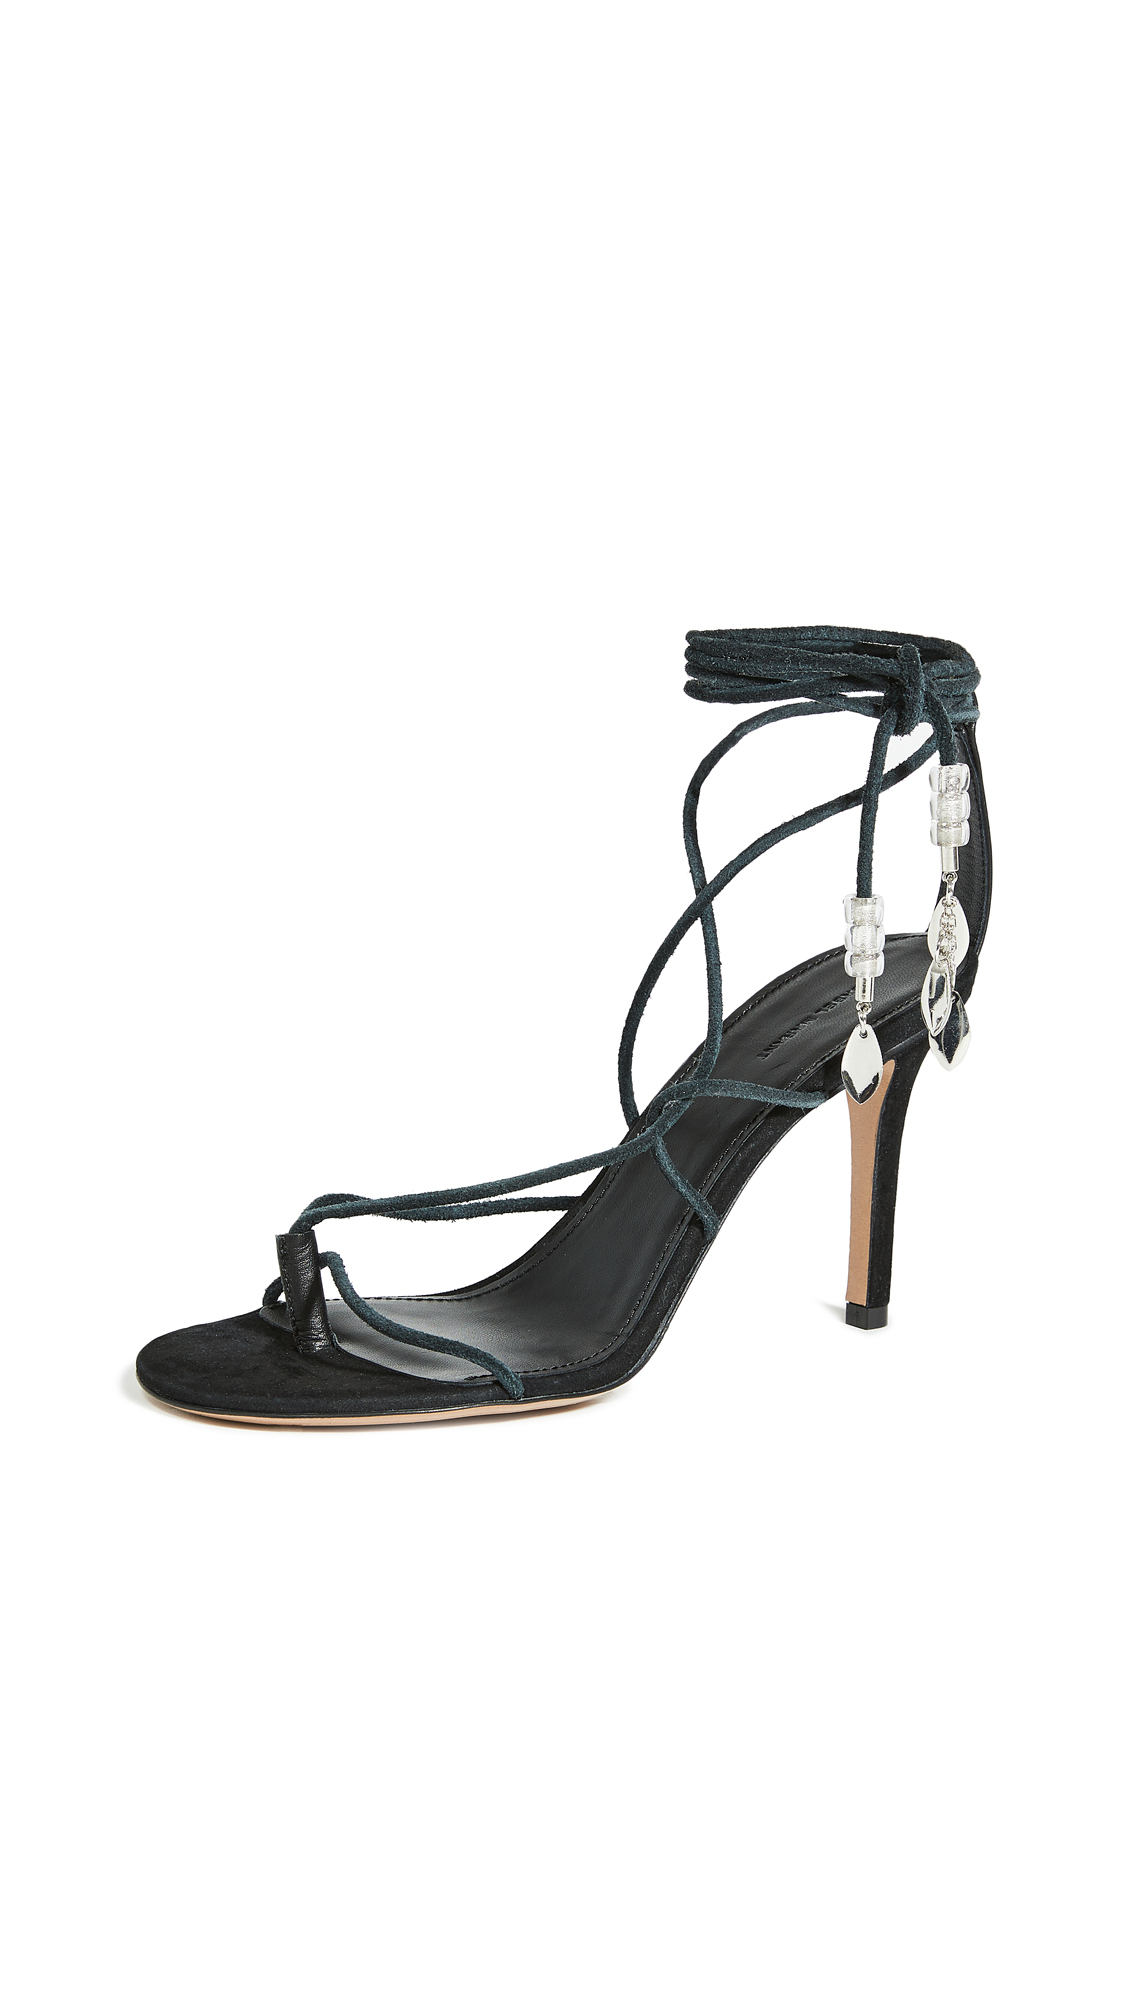 Isabel Marant Askee High Heeled Strappy Sandals - 40% Off Sale